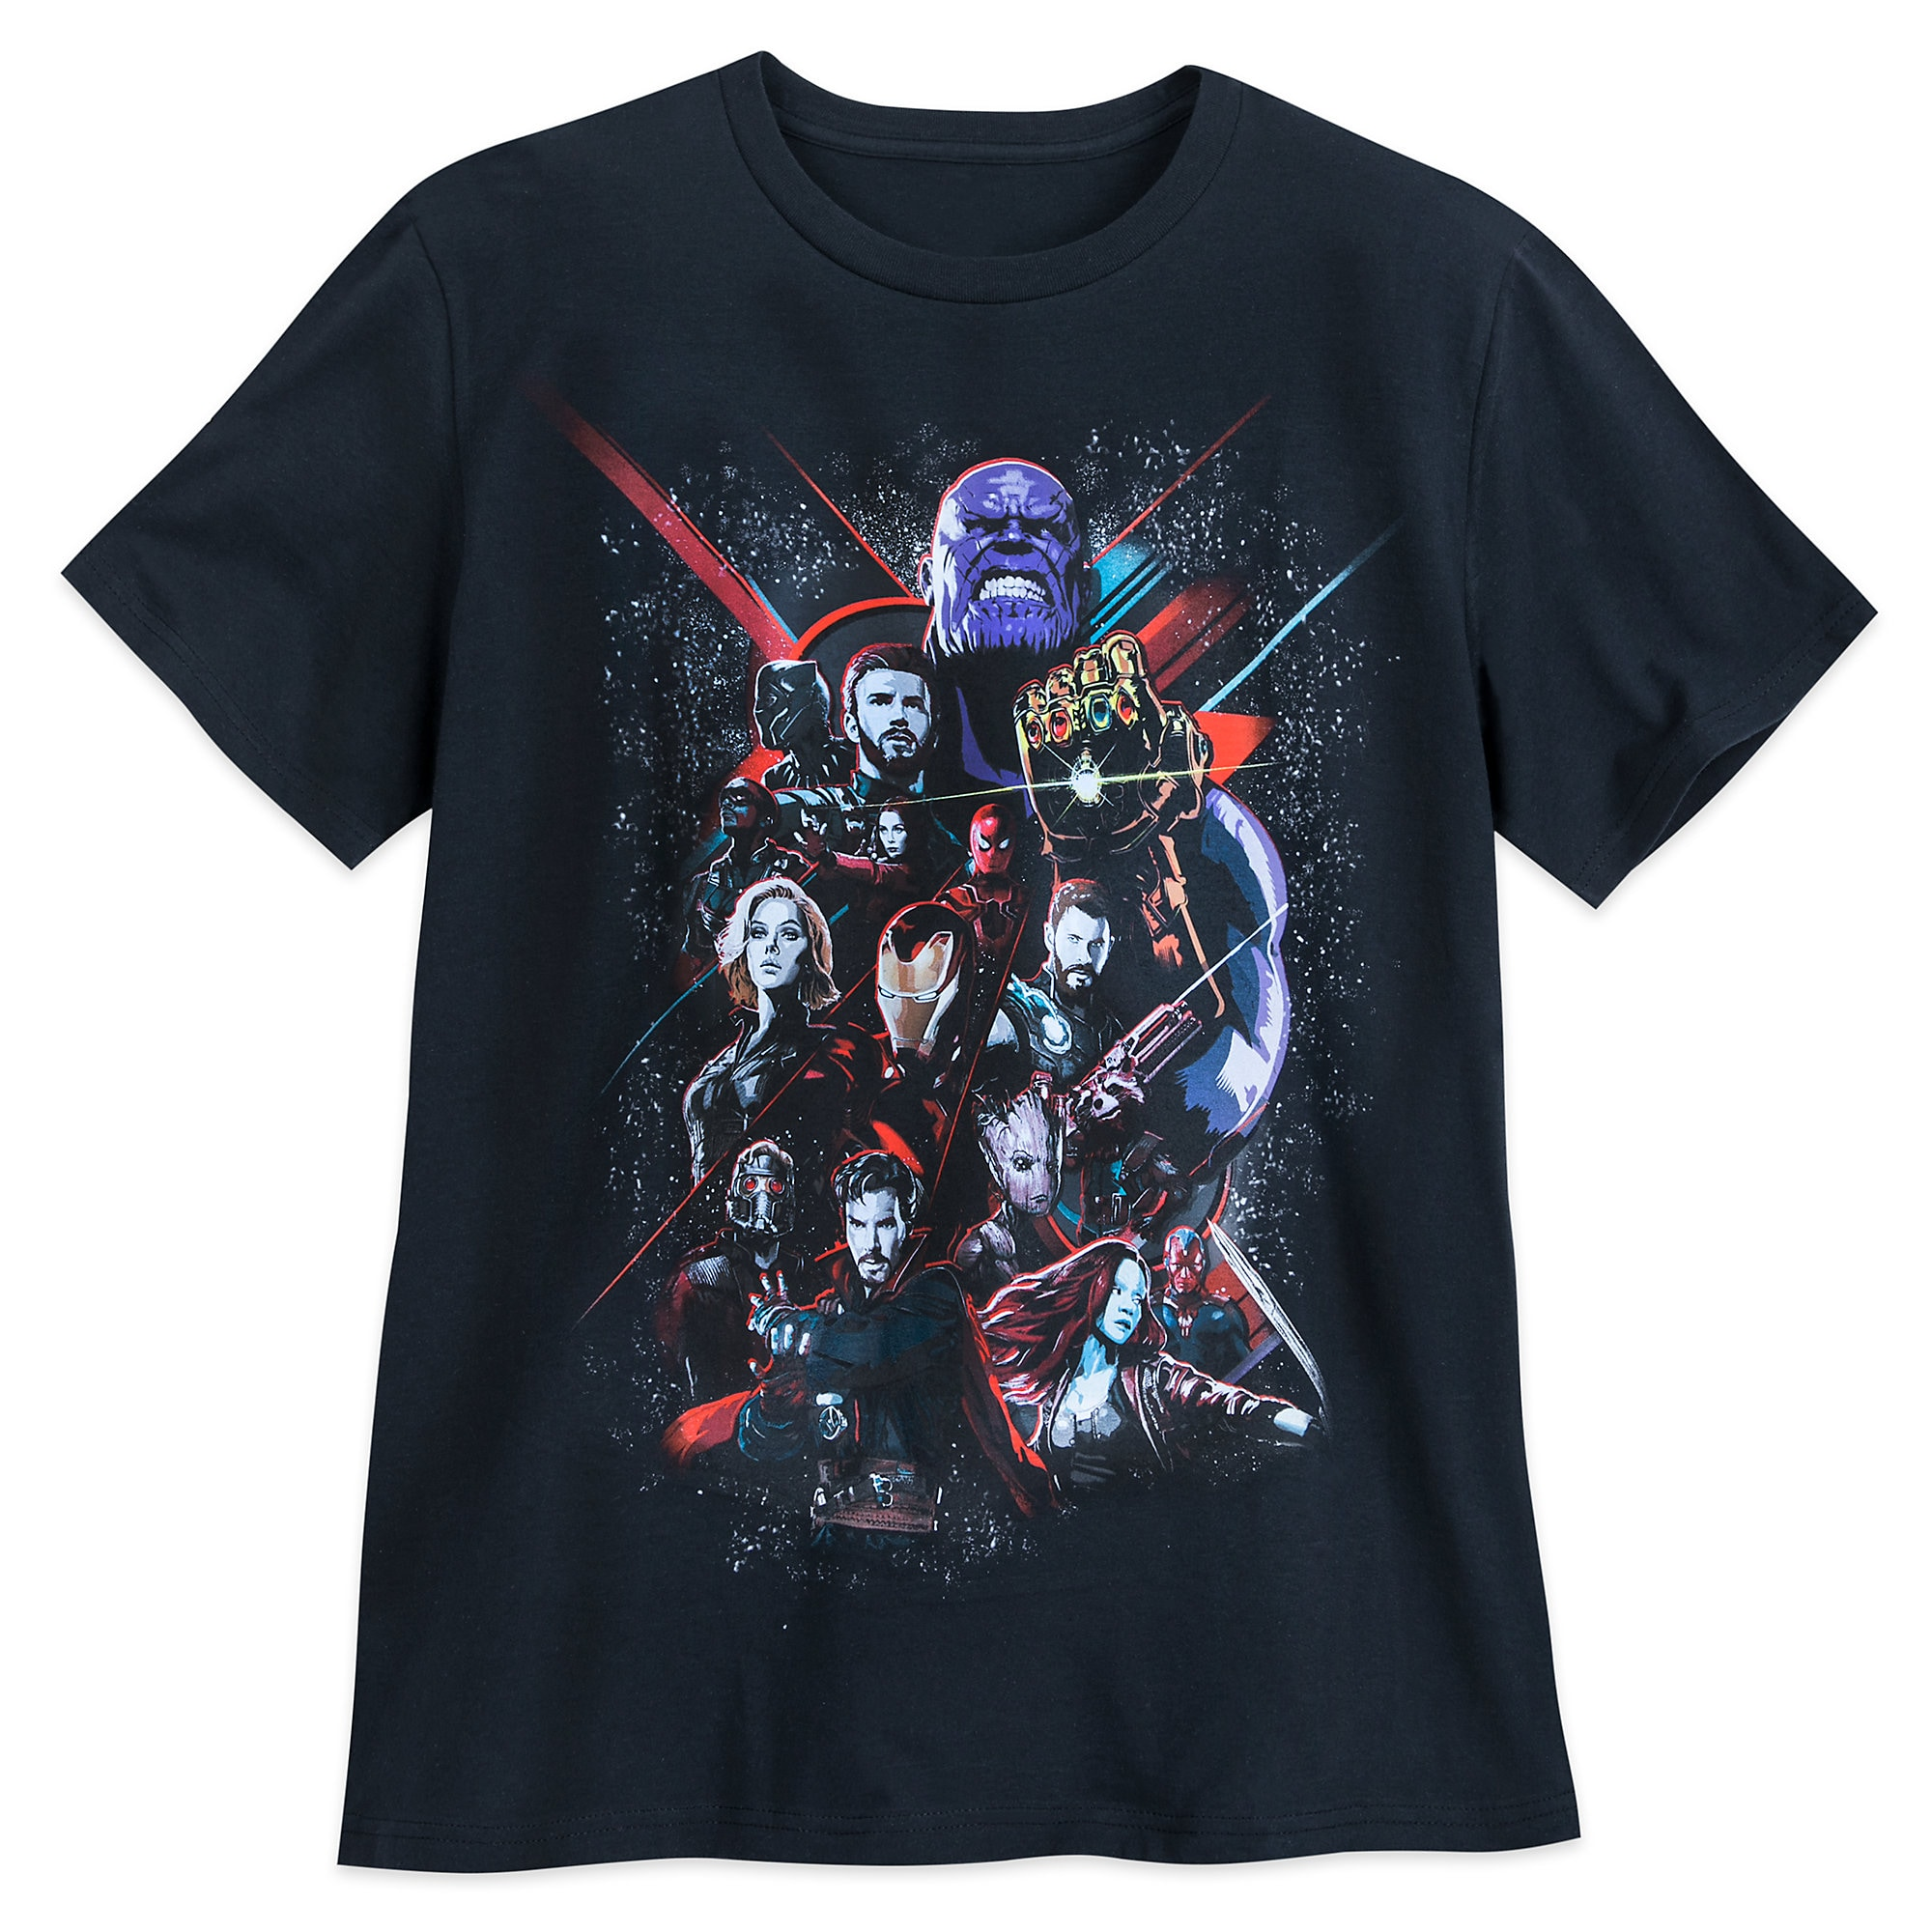 5736cb72ab8 Marvel's Avengers: Infinity War T-Shirt for Men - Black | shopDisney